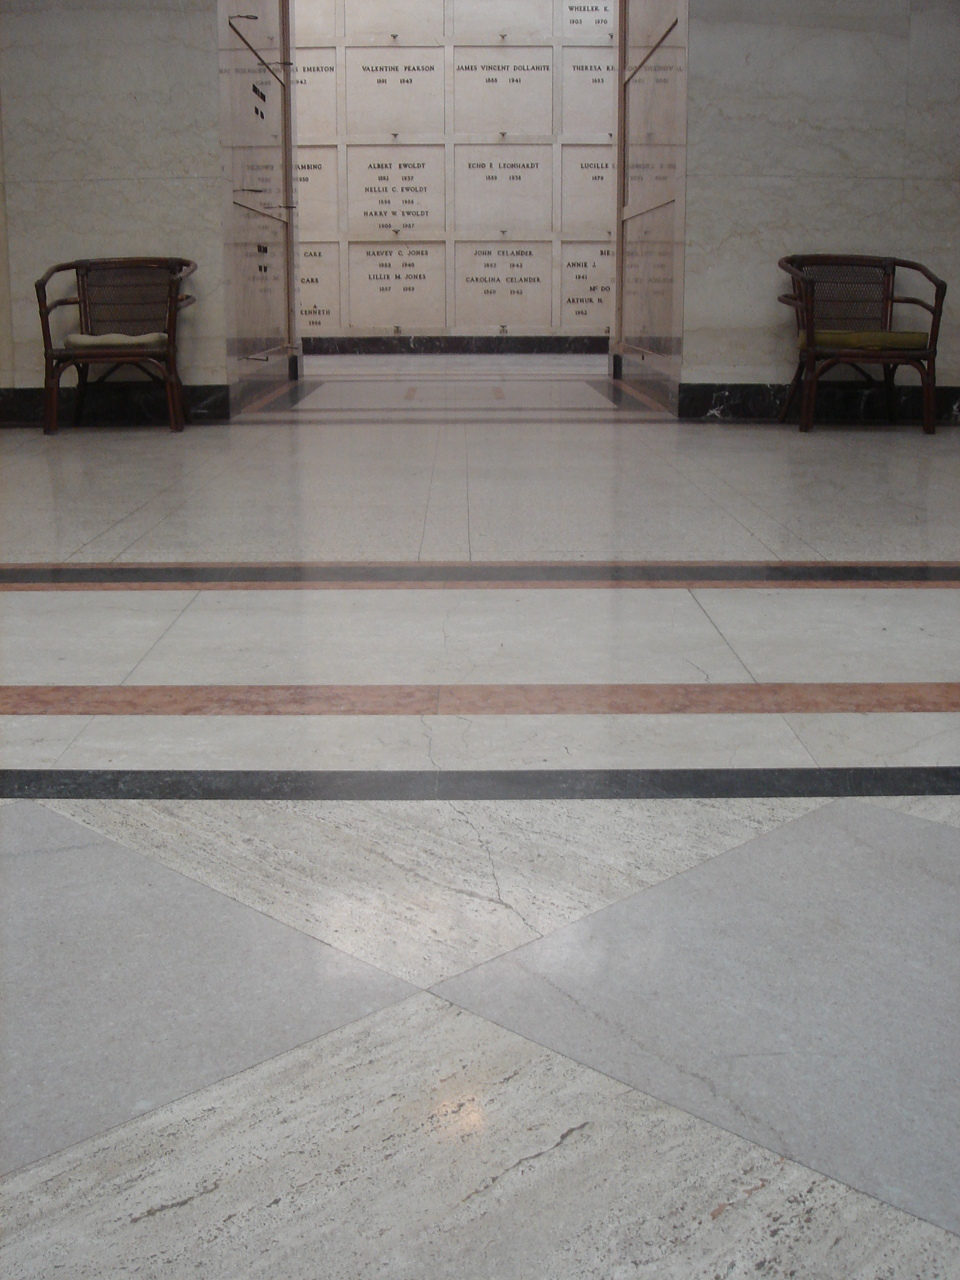 Mausoleum interior.